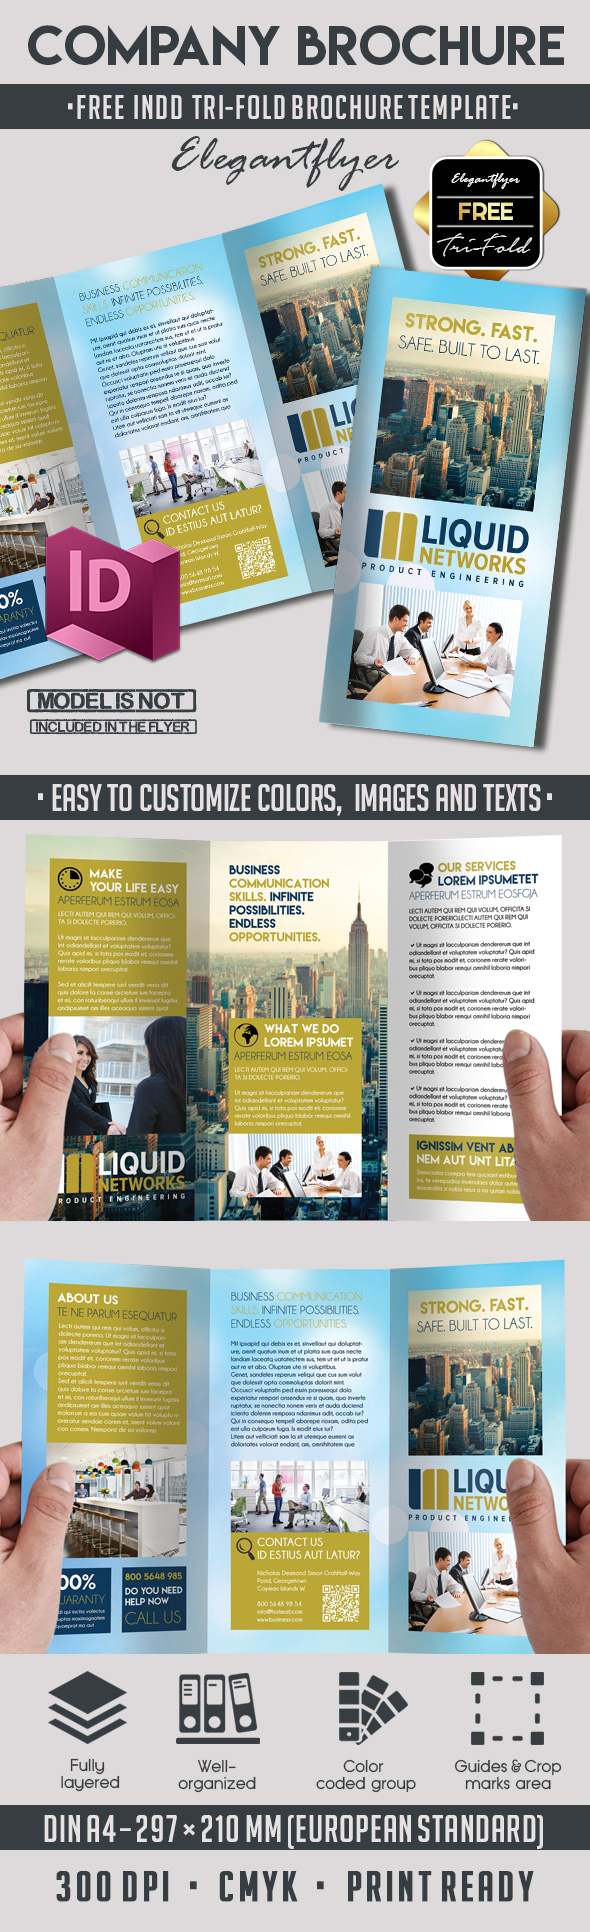 free indesign brochure templates download - 5 powerful free adobe indesign brochures templates by